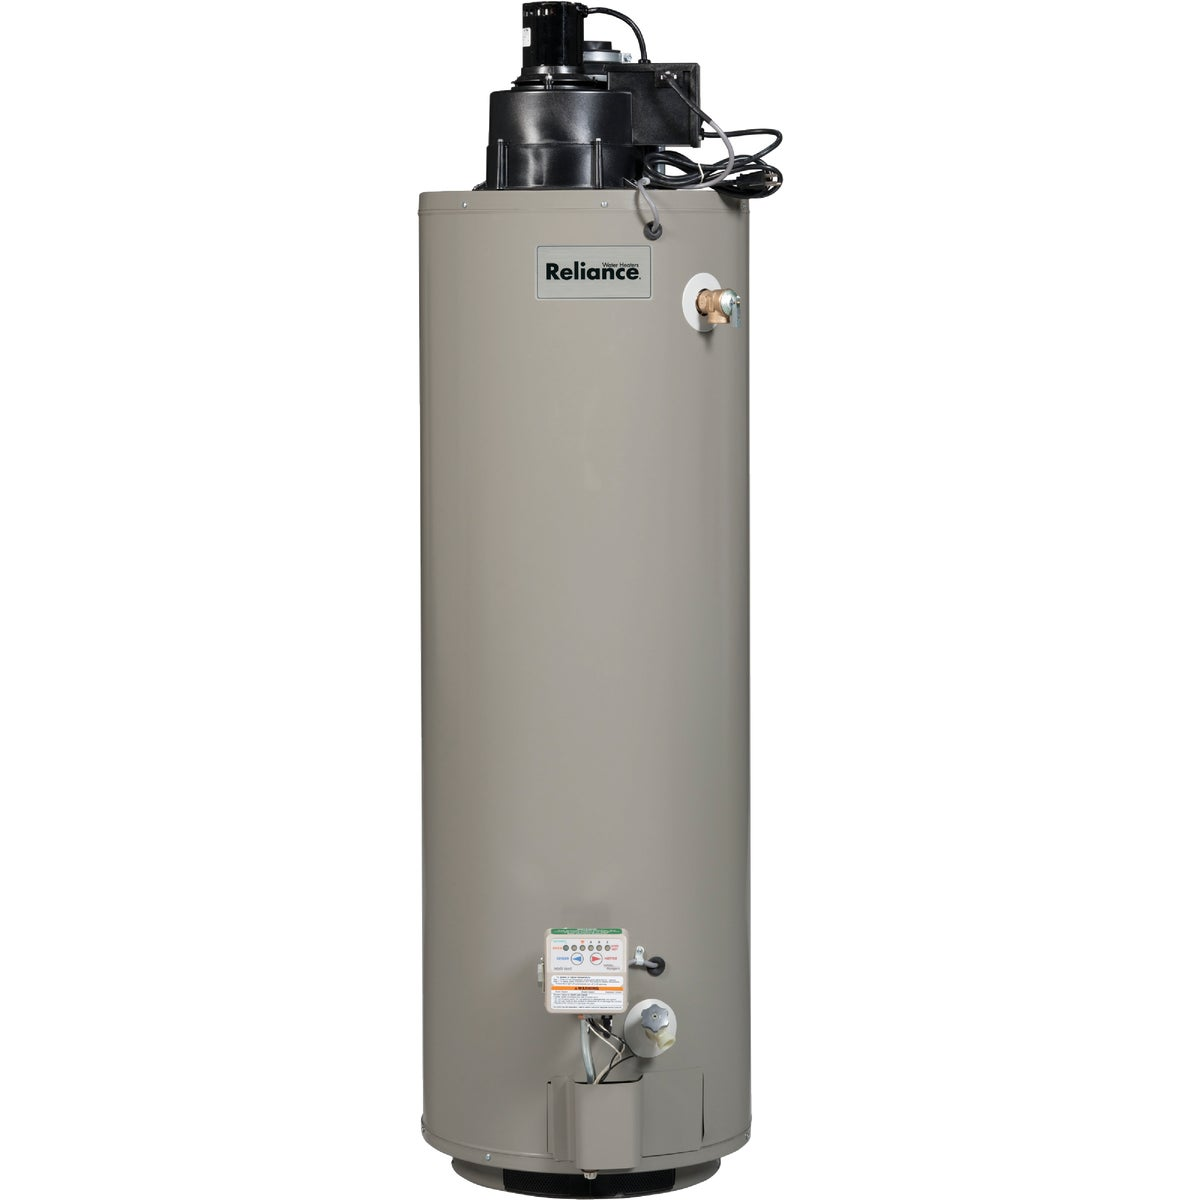 50GAL NAT GASPOWER-VENT - 6 50 YRVIT200 by Reliance Added Sales